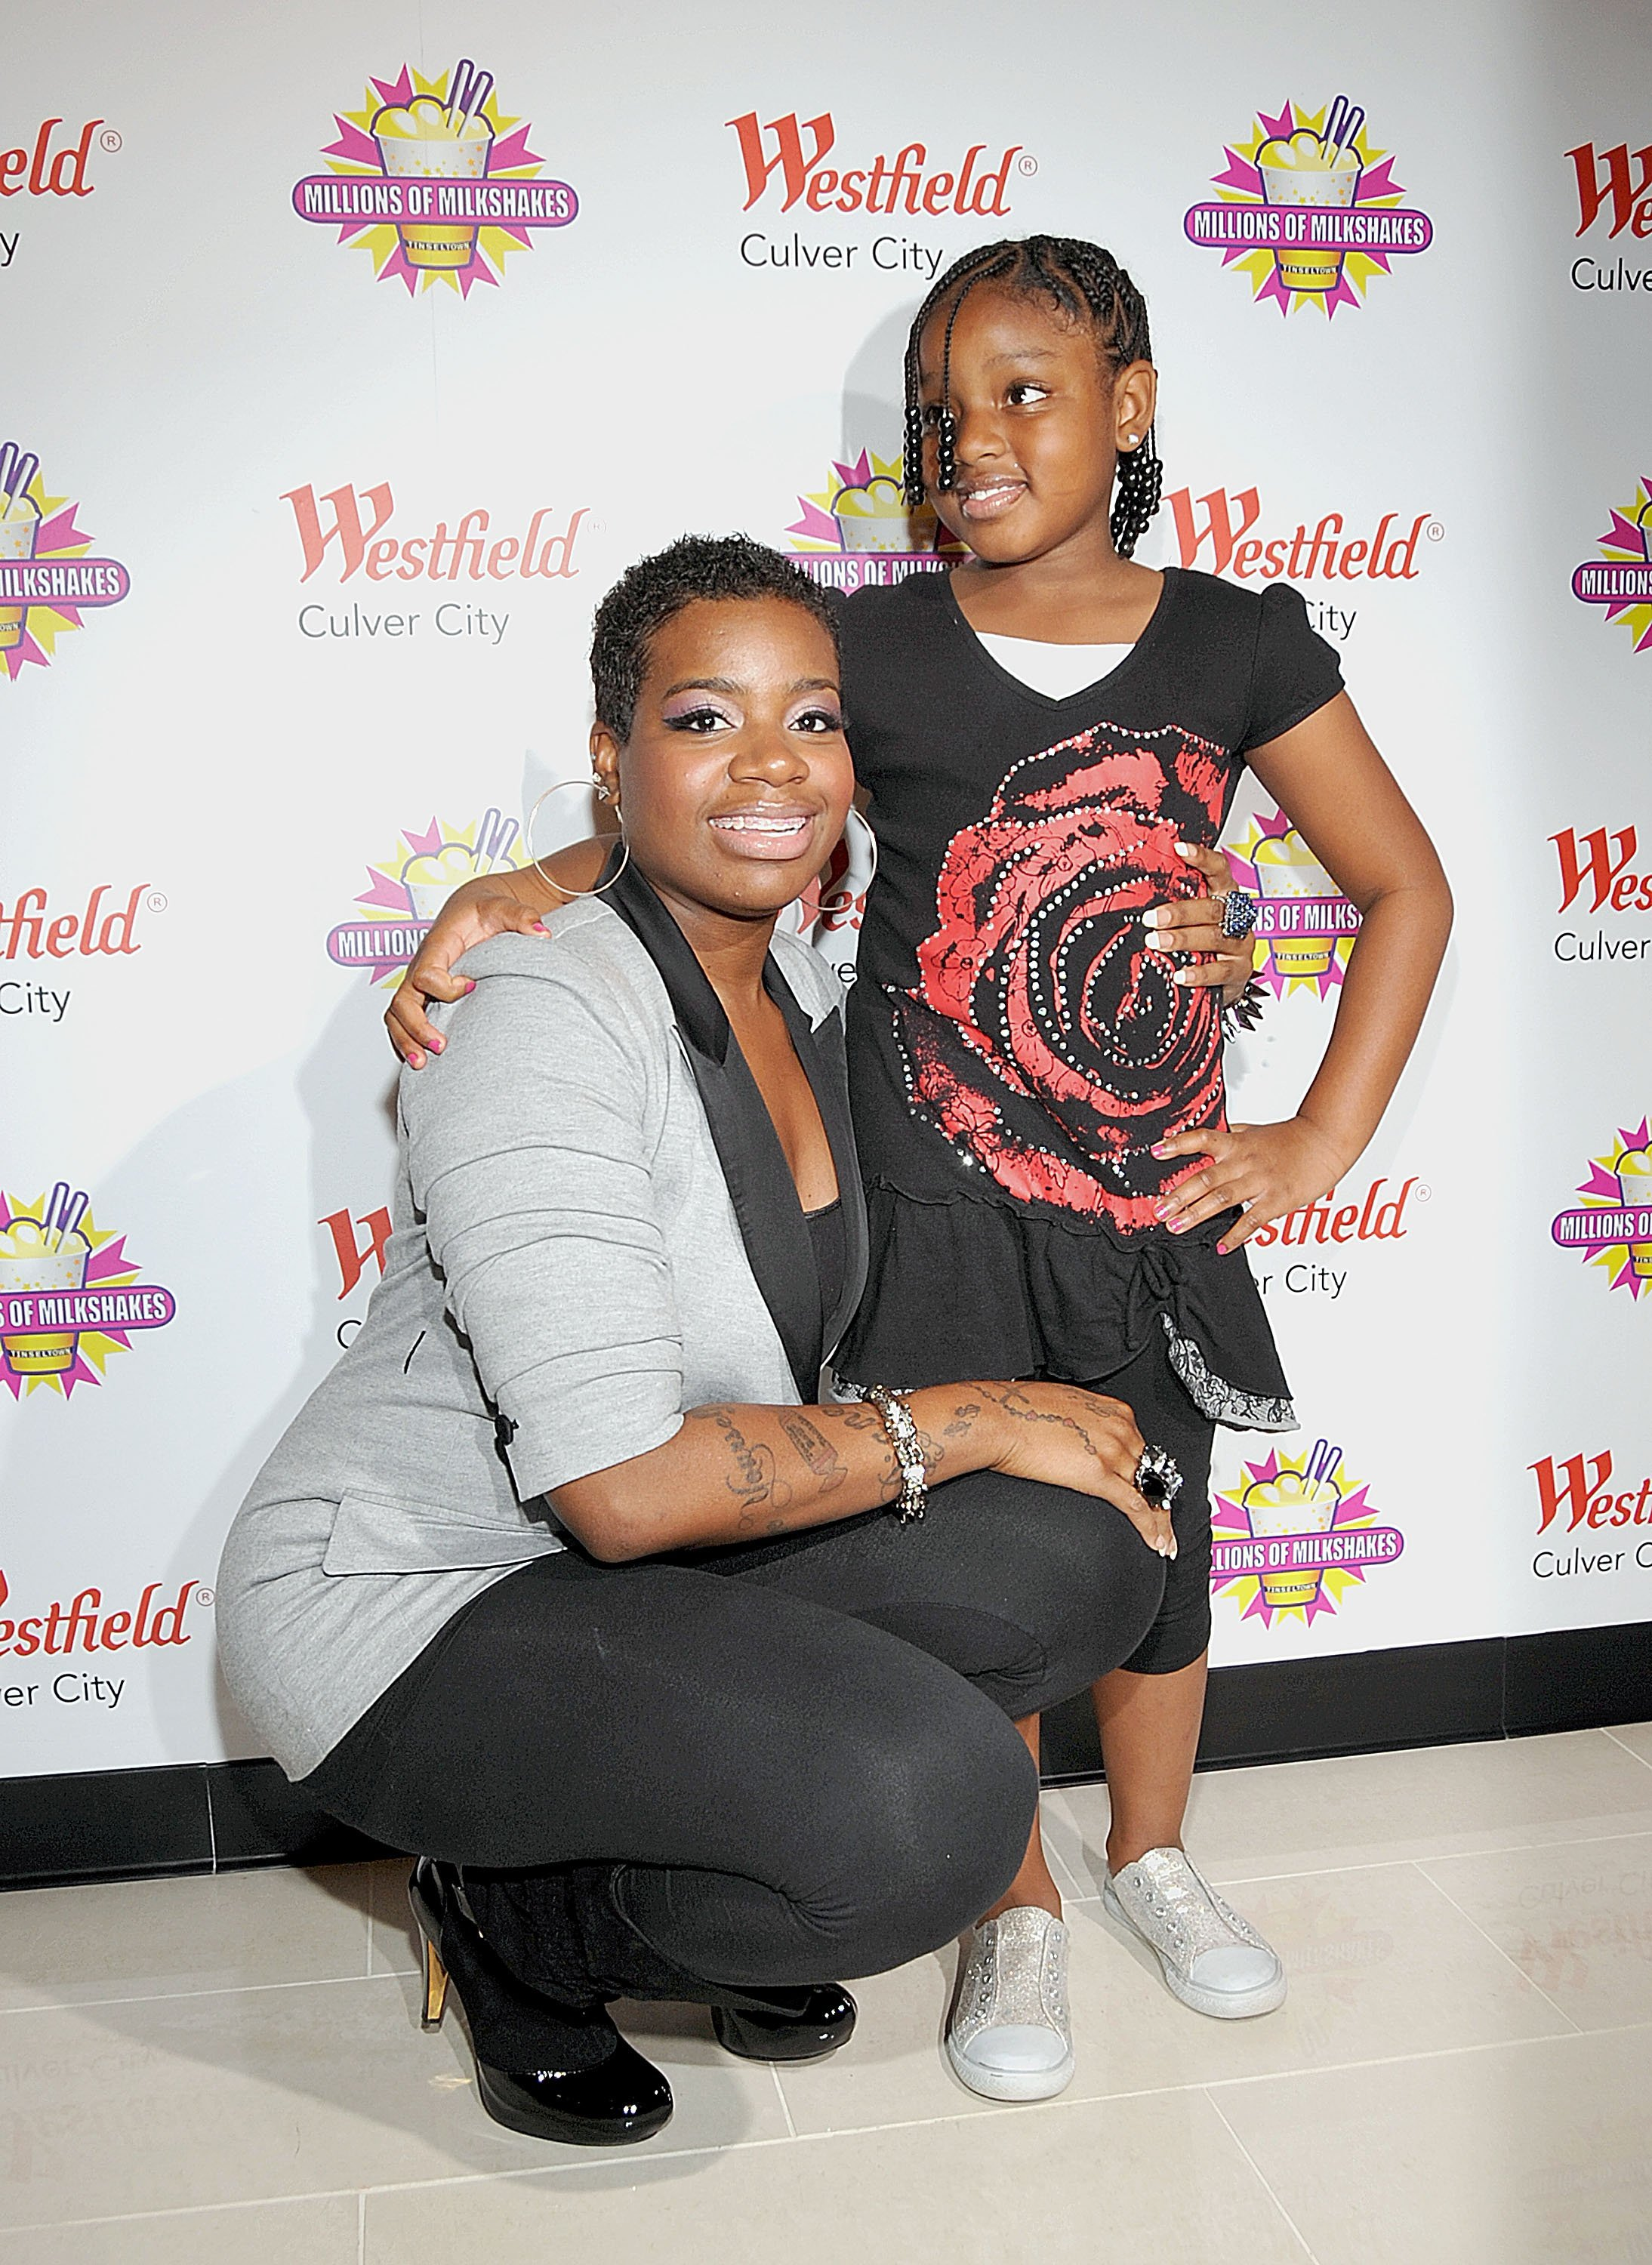 Fantasia and her daughter, Zion Barrino at Millions of Milkshakes on November 24, 2010 in Culver City, California. | Source: Getty Images